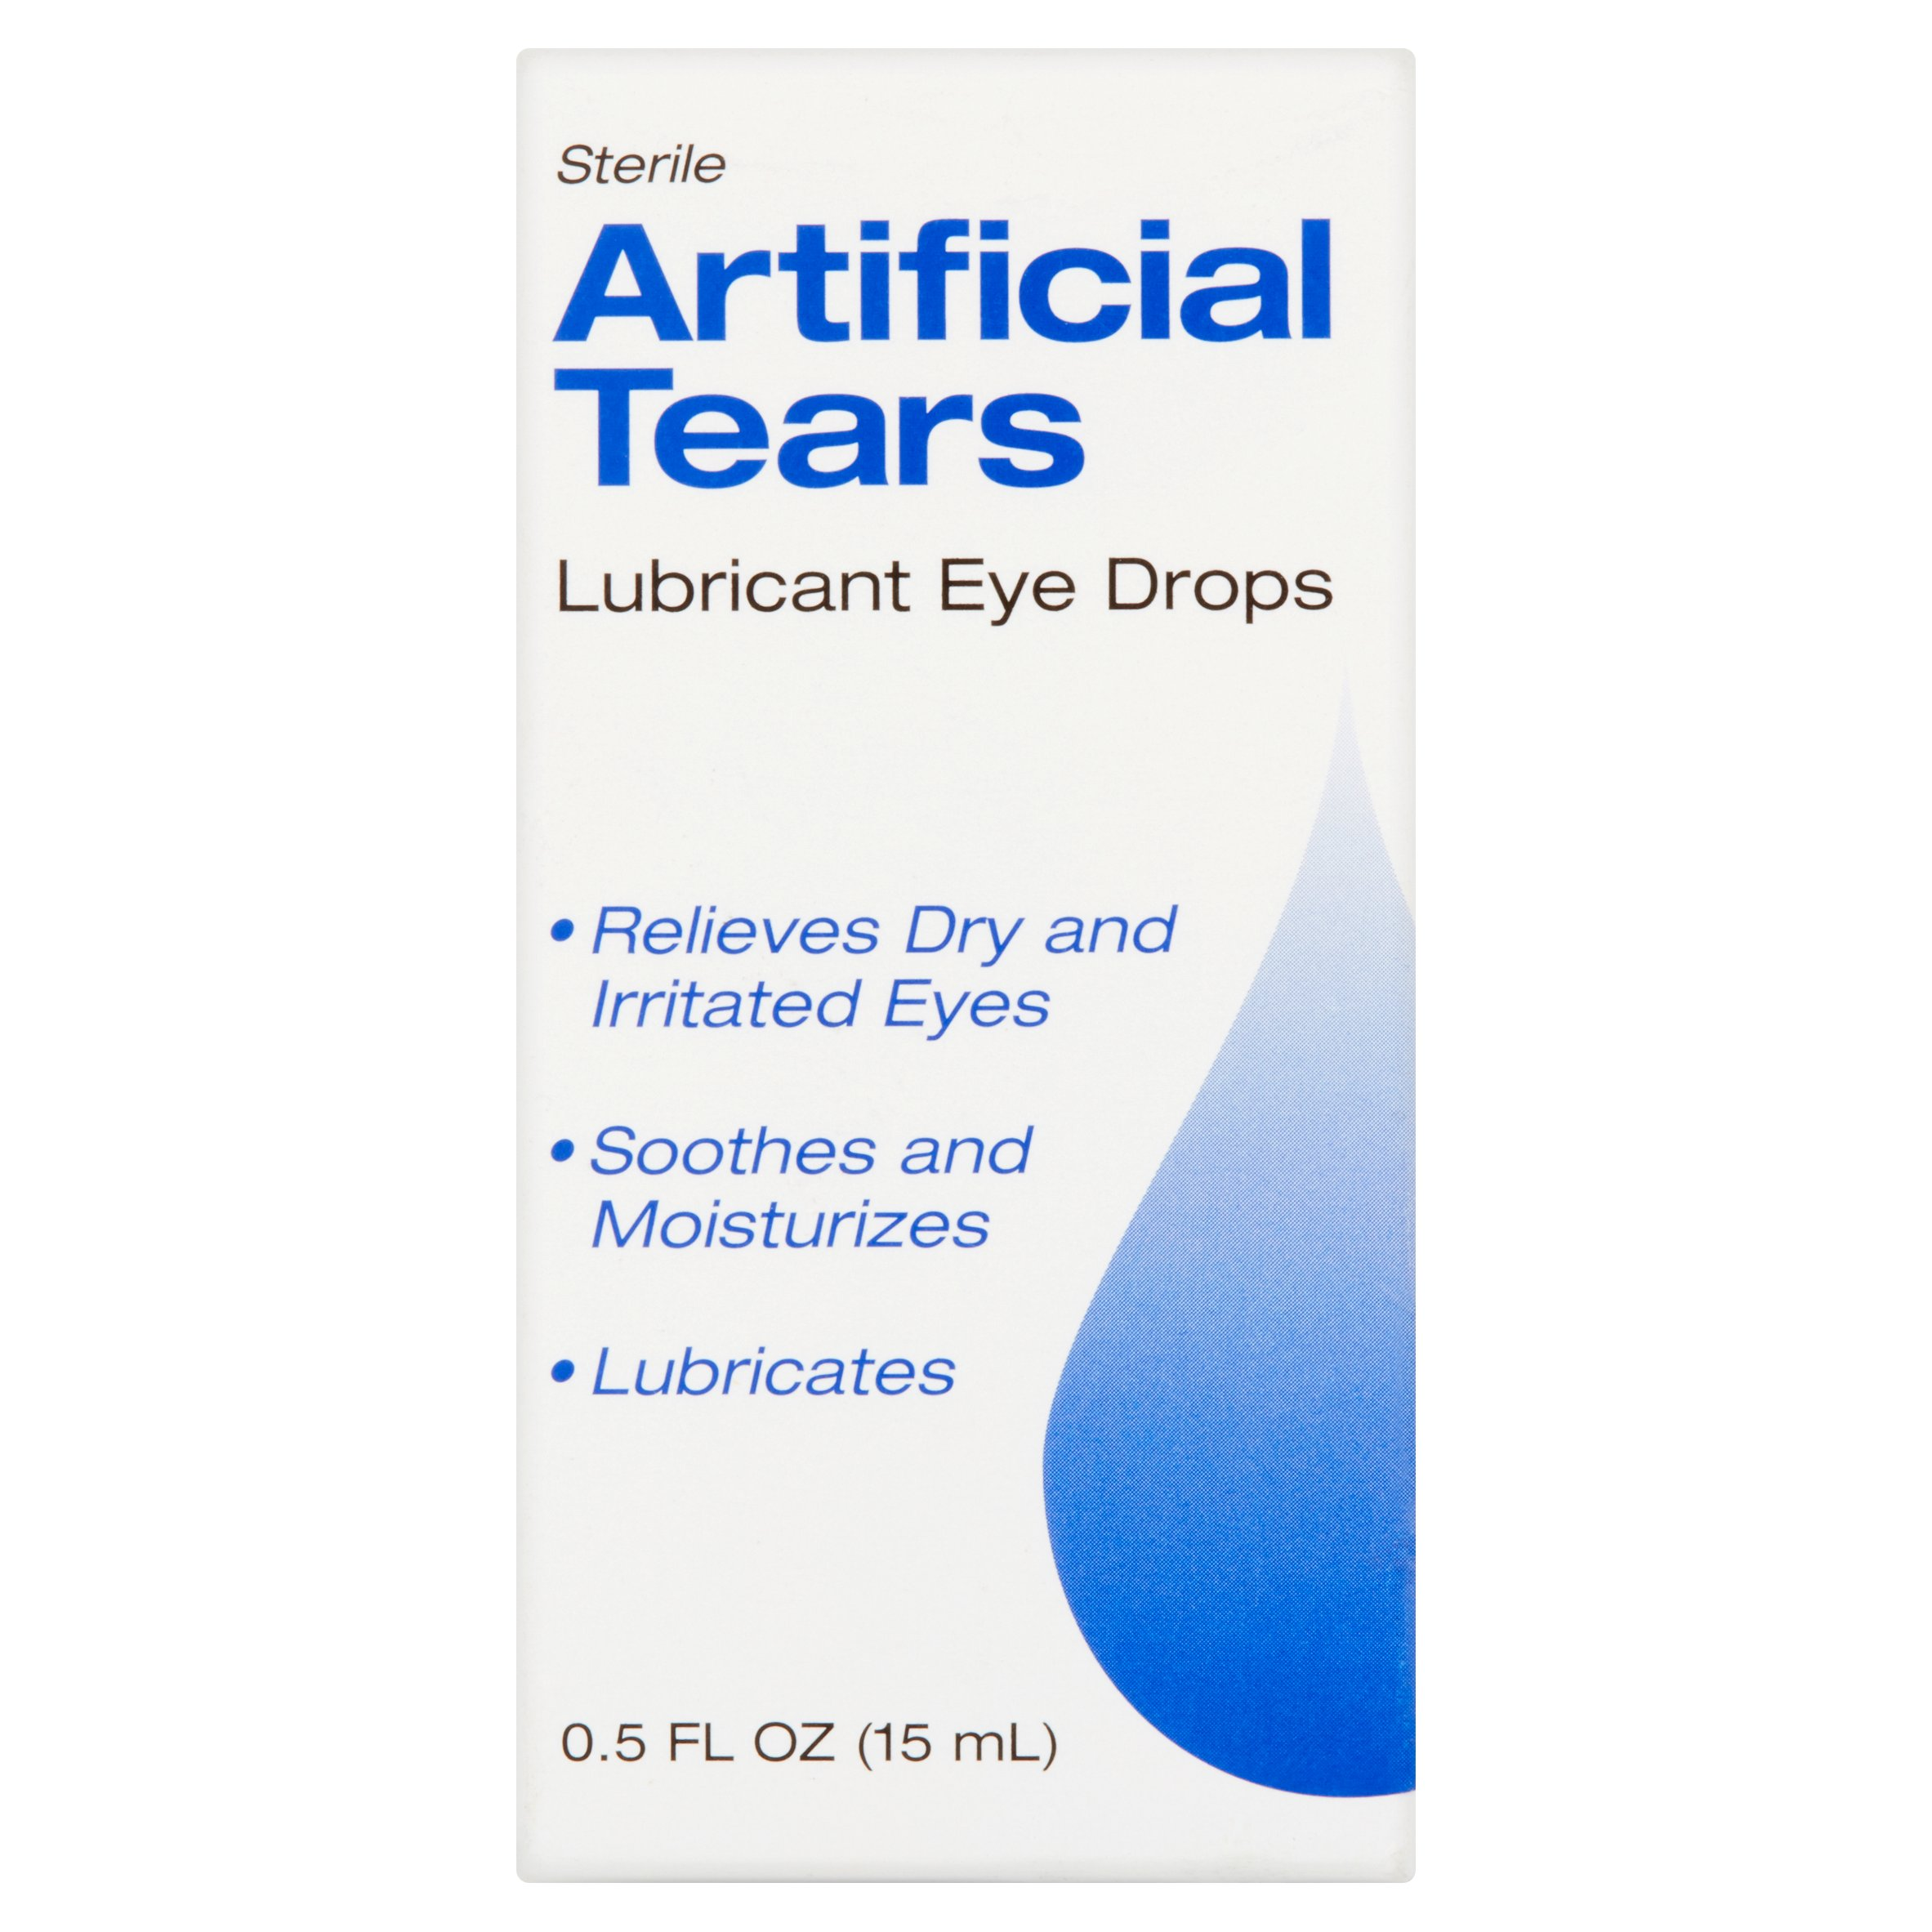 Sterile Artificial Tears Lubricant Eye Drops, 0.5 fl oz